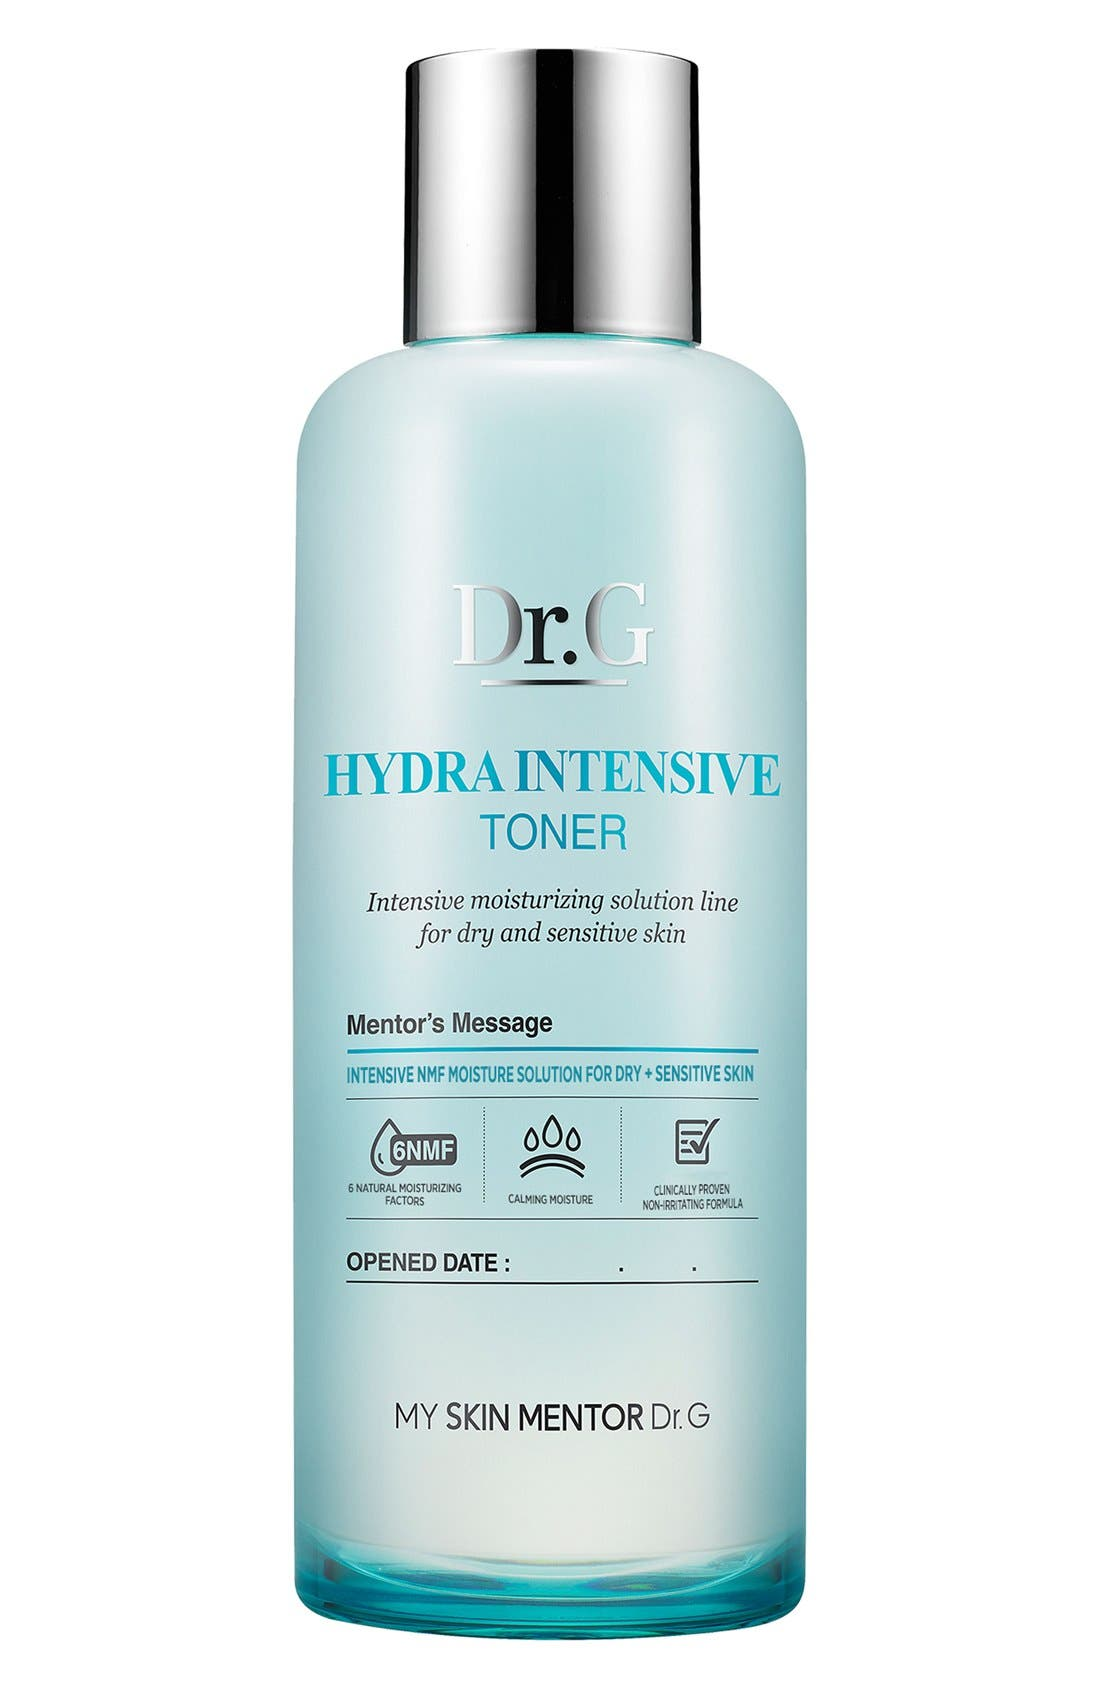 My Skin Mentor Dr. G Beauty Hydra Intensive Toner